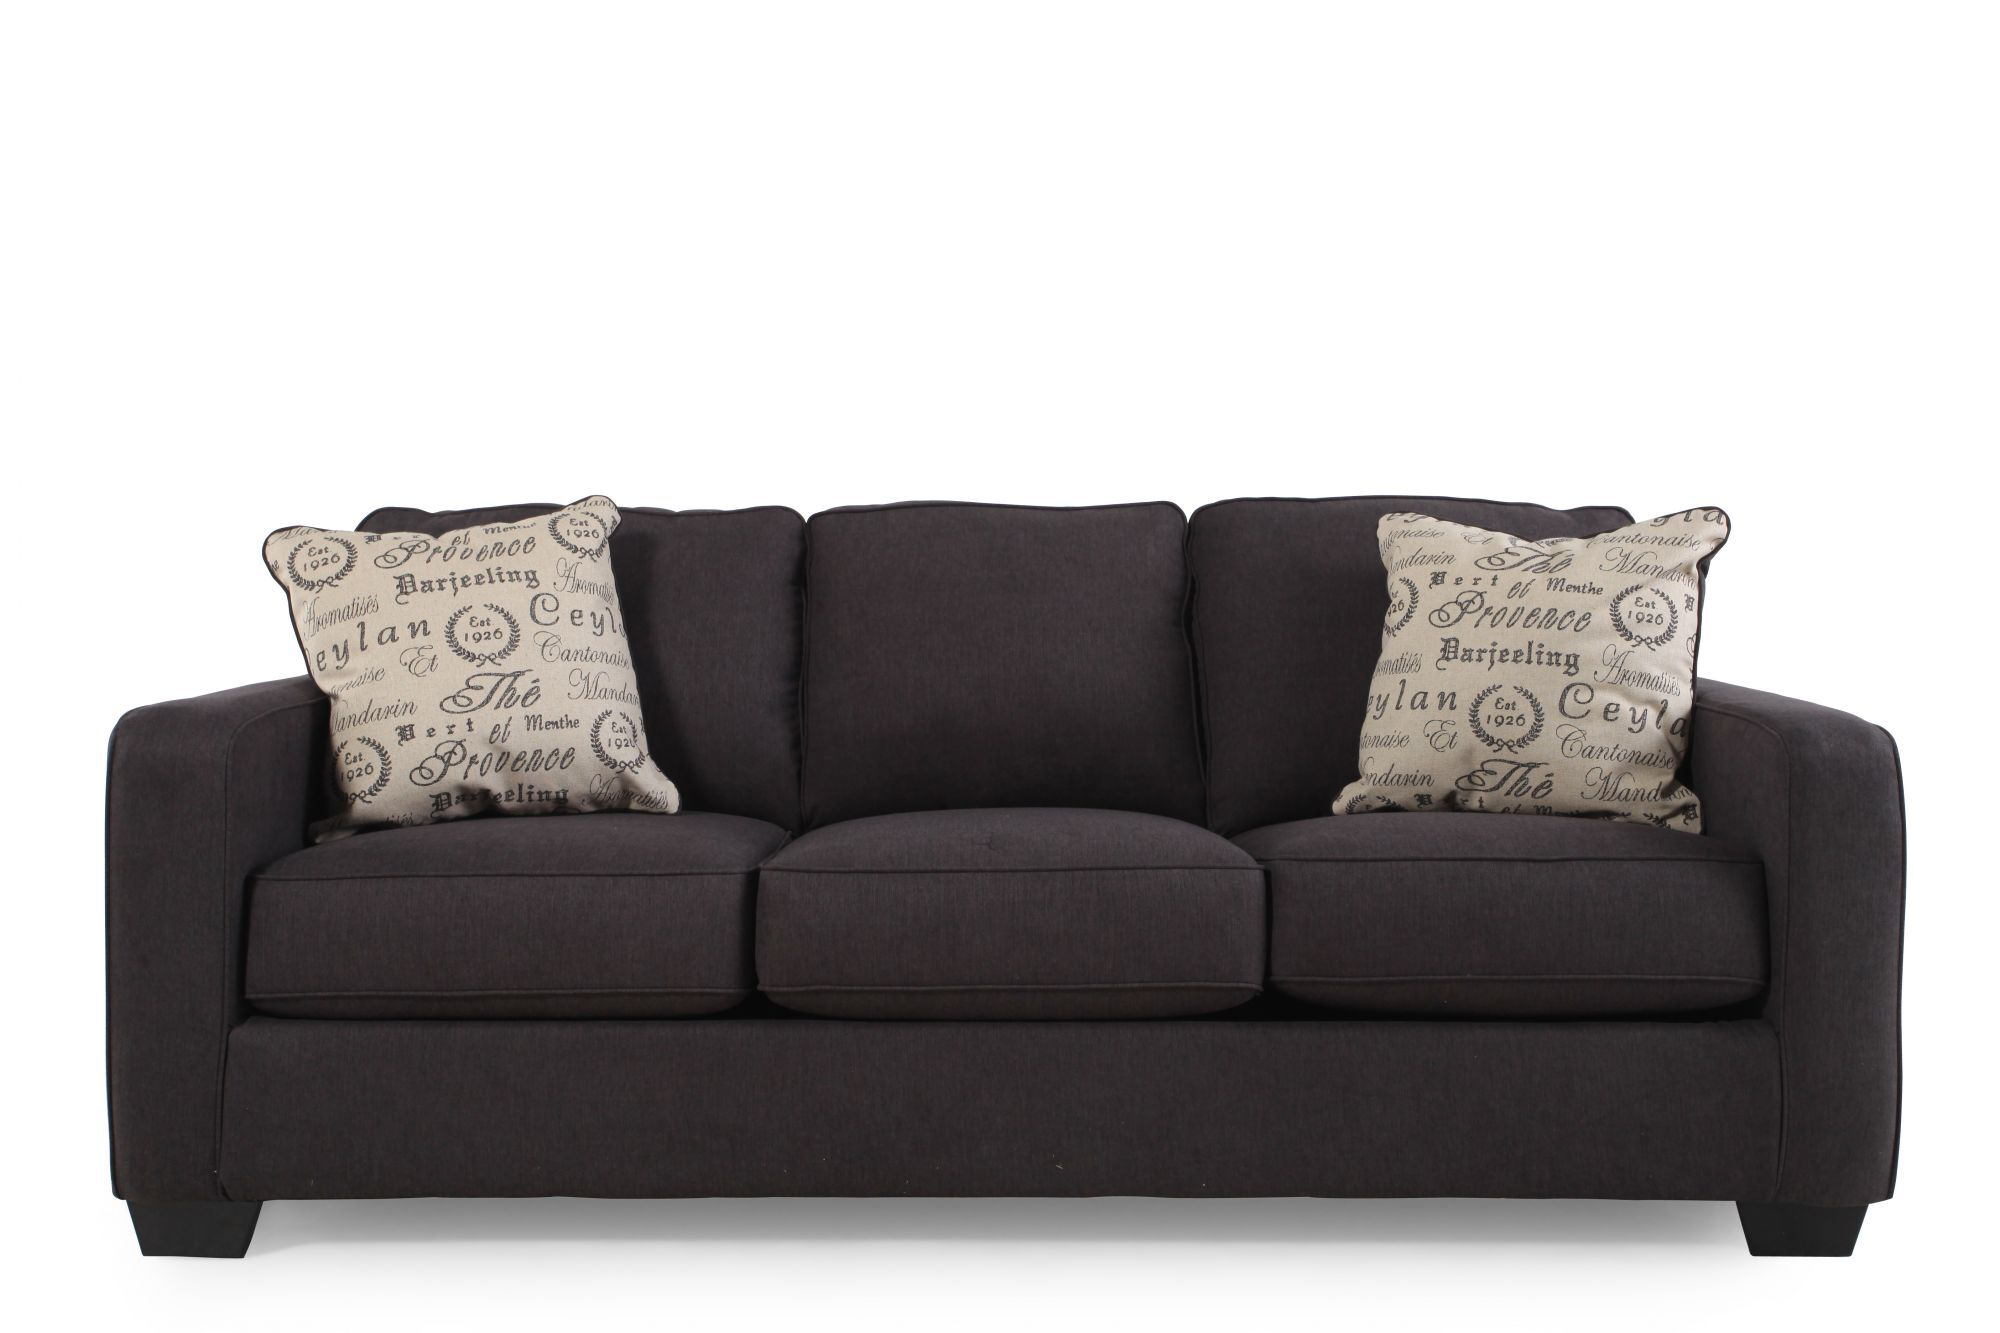 Images Low Profile Casual 84u0026quot; Sofa In Charcoal Low Profile Casual  84u0026quot; Sofa In Charcoal